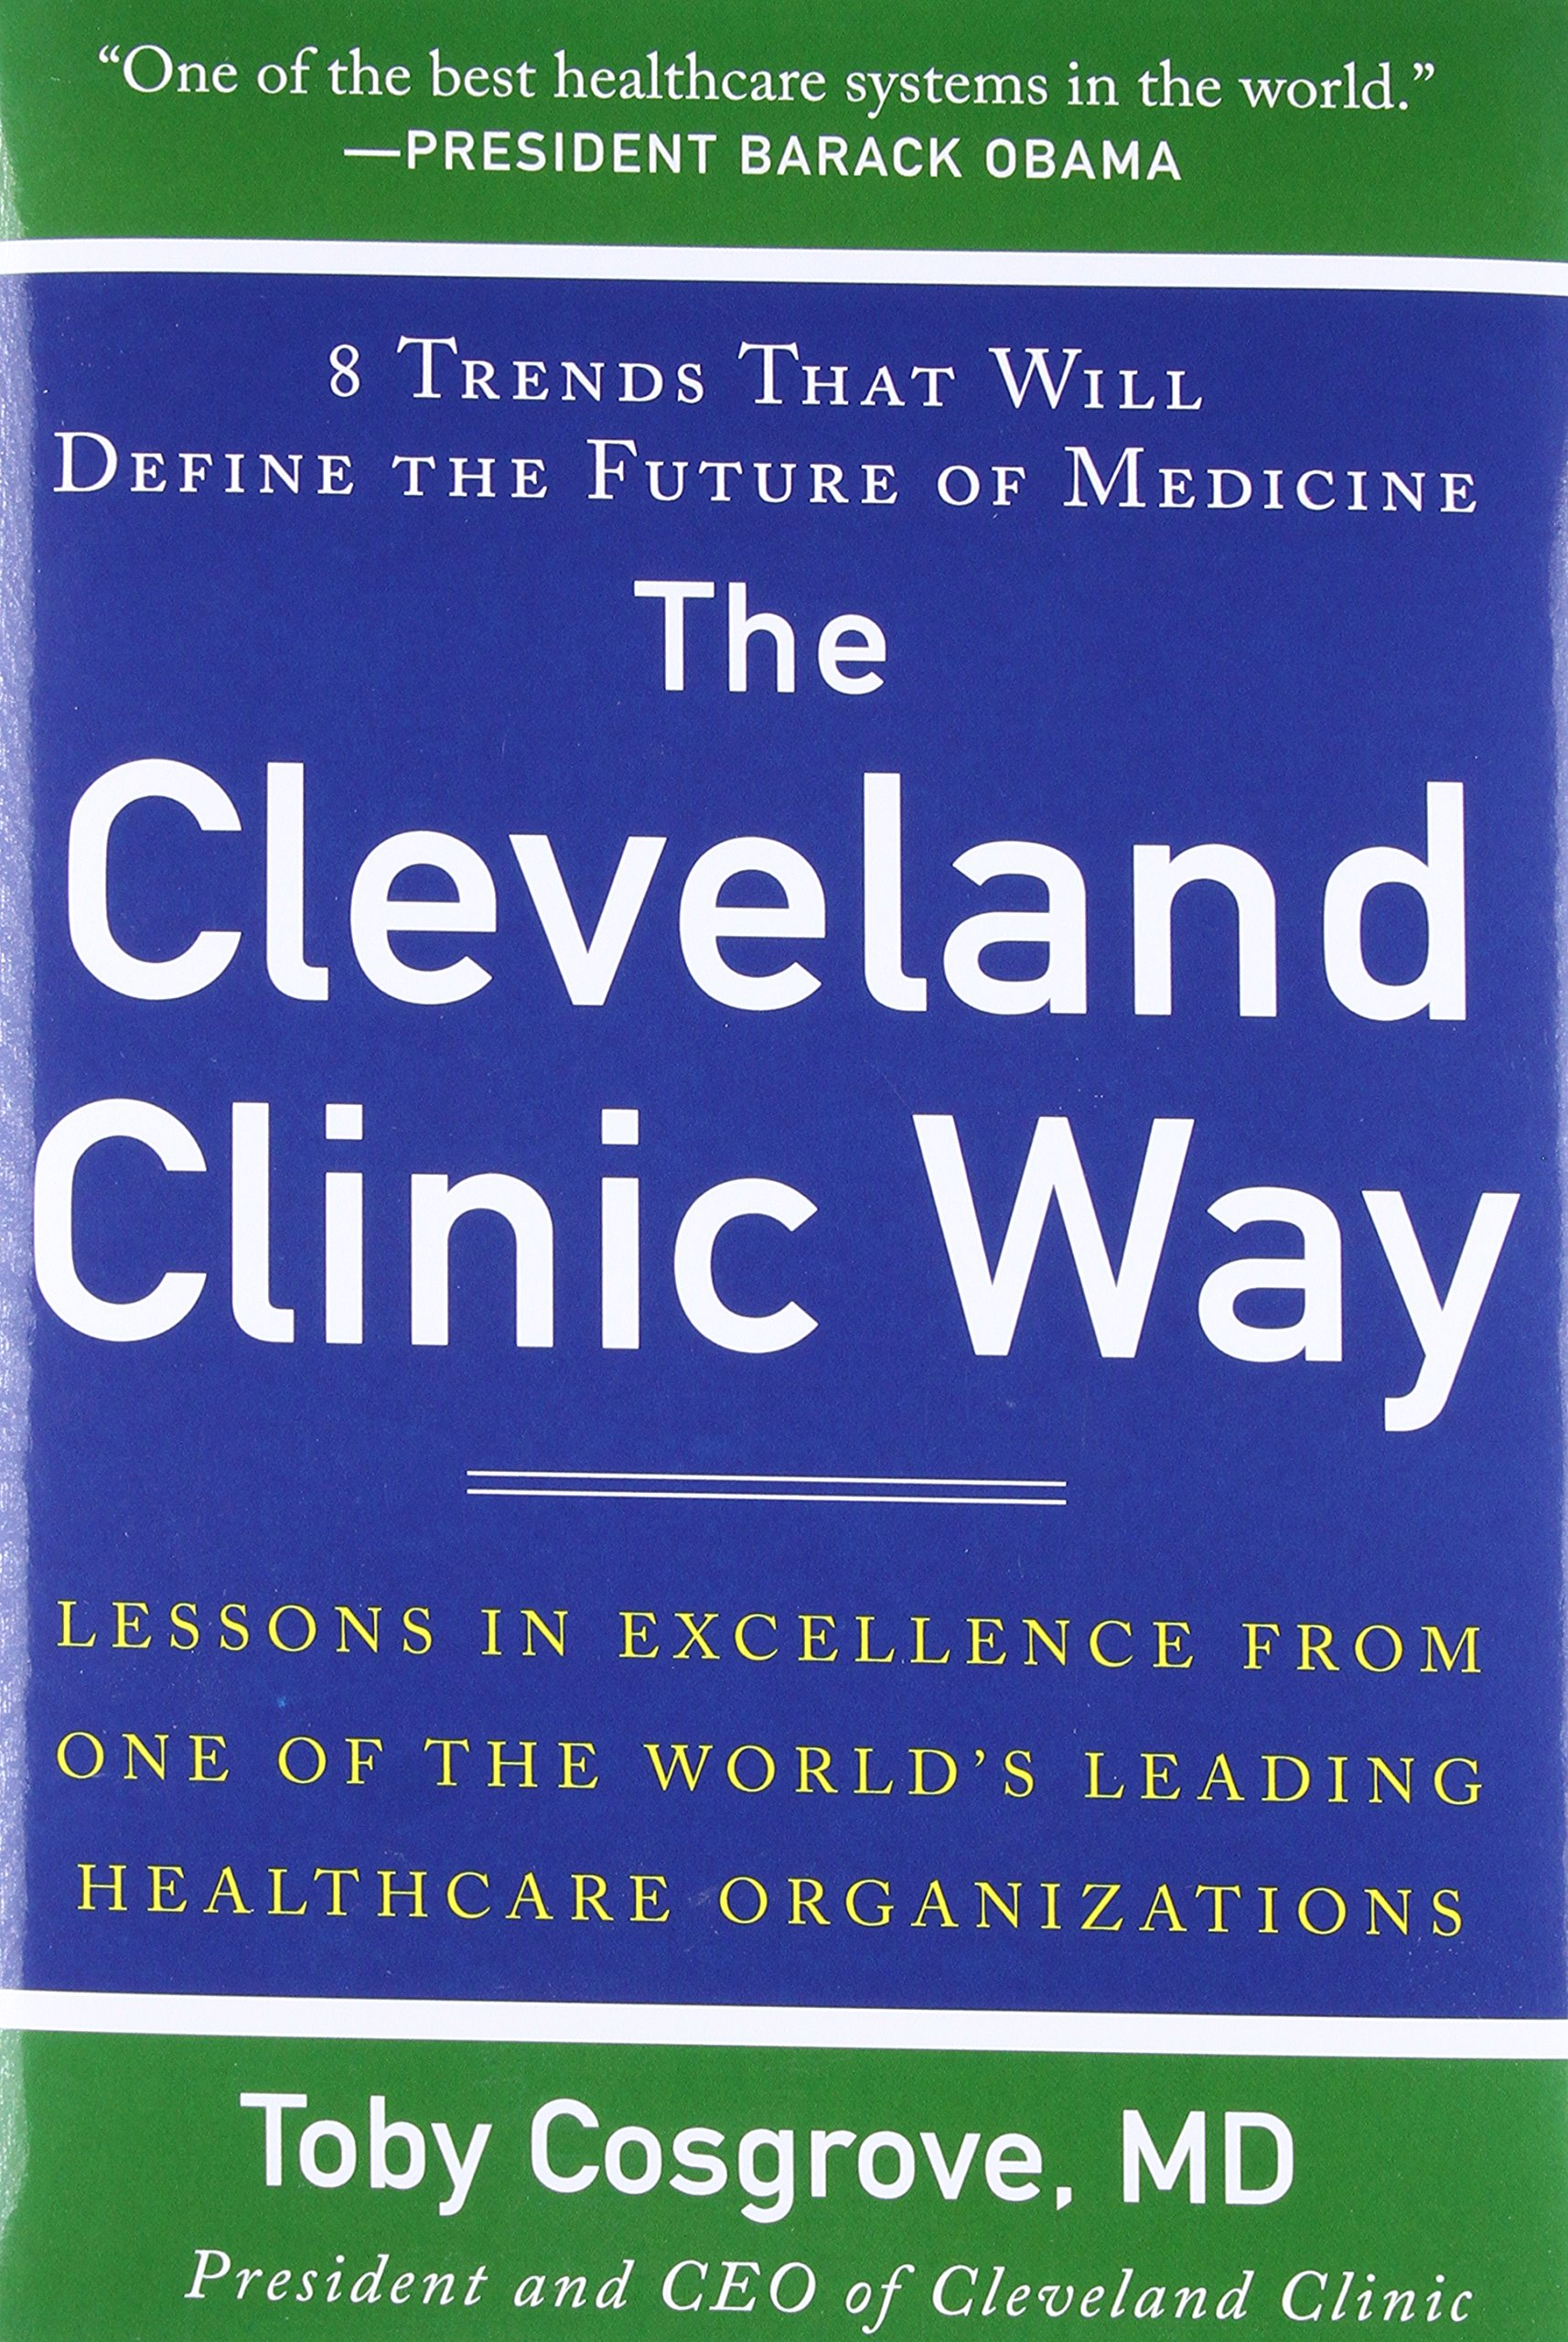 amazoncom the cleveland clinic way lessons in excellence from one of theworld's leading health care organizations () toby cosgrovebooks. amazoncom the cleveland clinic way lessons in excellence from